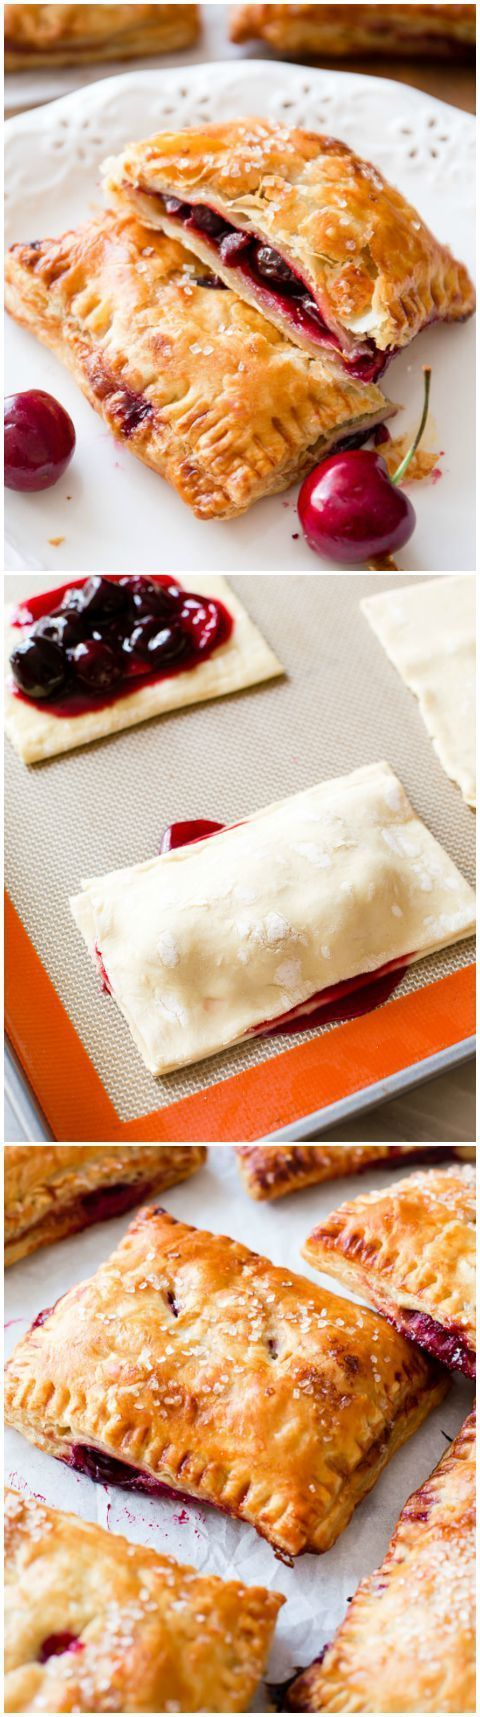 Frozen puff pastry makes these handheld cherry pies SO EASY to make! Recipe foun... - pice o' cake